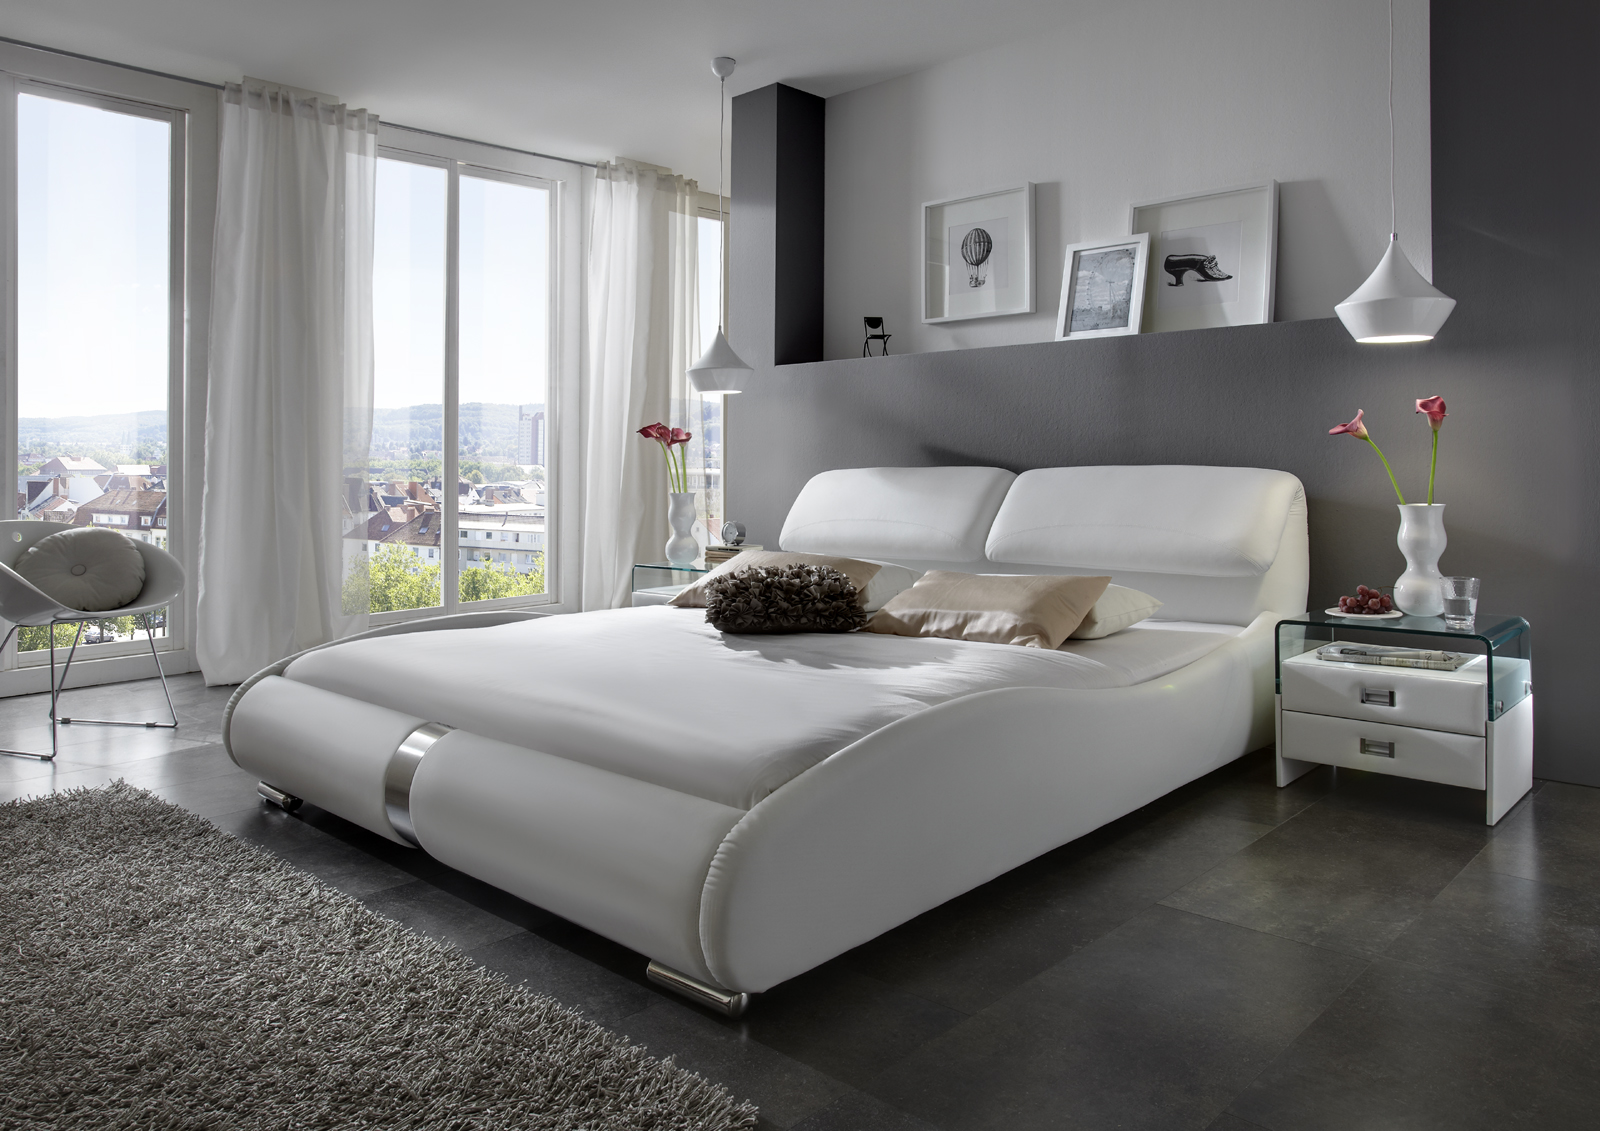 sam polsterbett 140 cm wei lucca g nstig. Black Bedroom Furniture Sets. Home Design Ideas